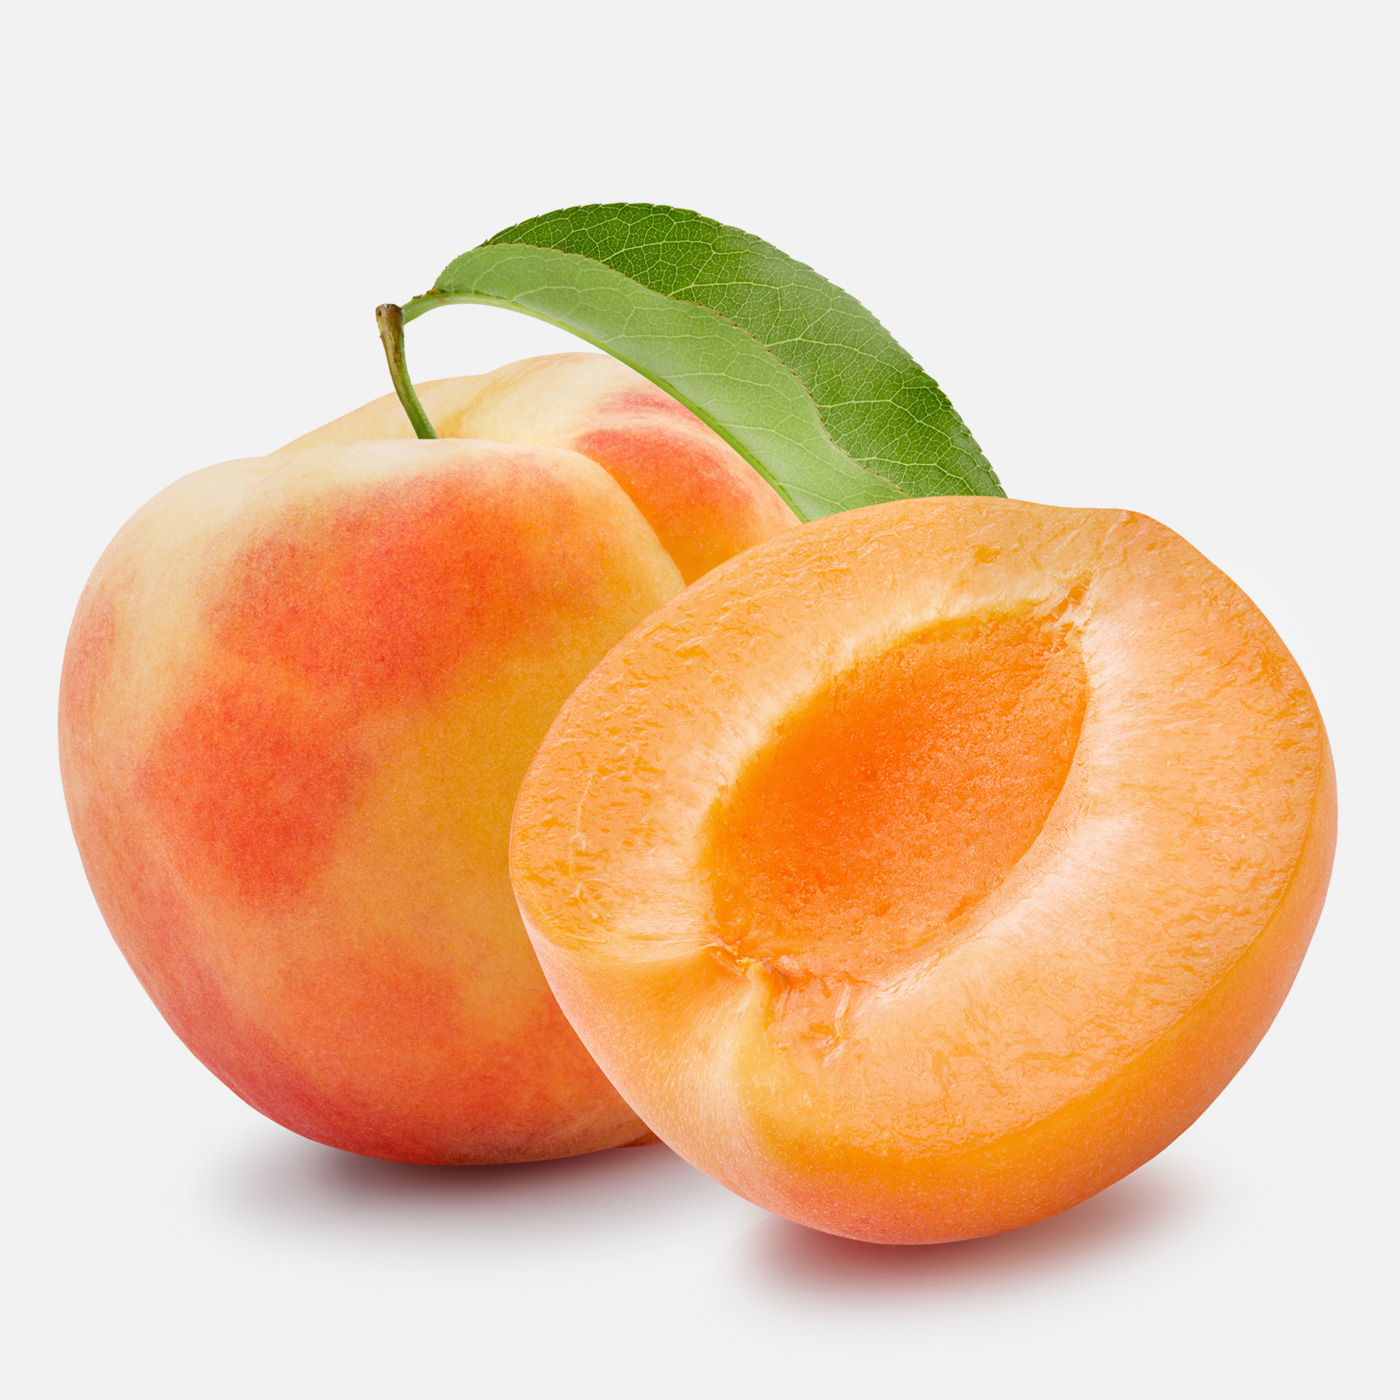 Using apricots, unlock the possibilities for flavours, aromas and sweeteners in animal feed and pet food production